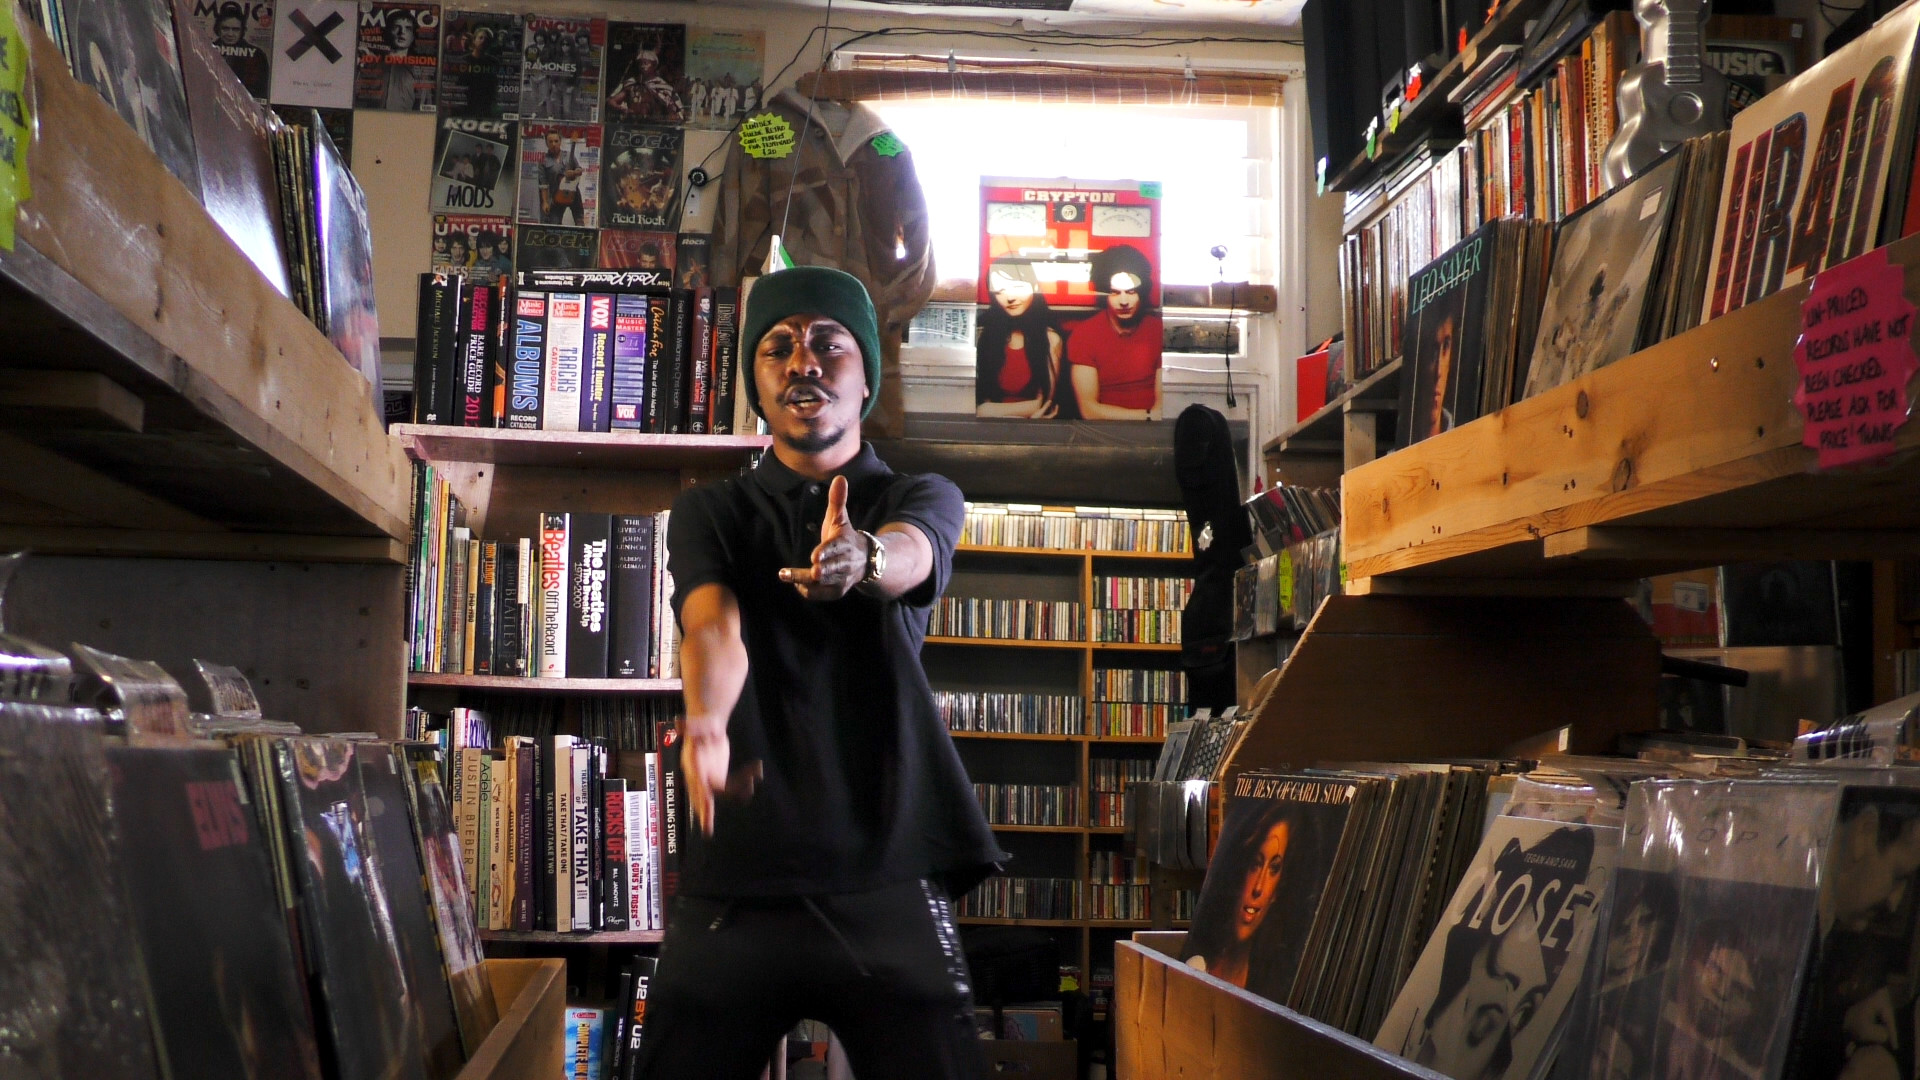 Still from Life Now Music Video of Jepeto Knockz rapping towards camera in a Vinyl Record Store on Movement Films Shoot